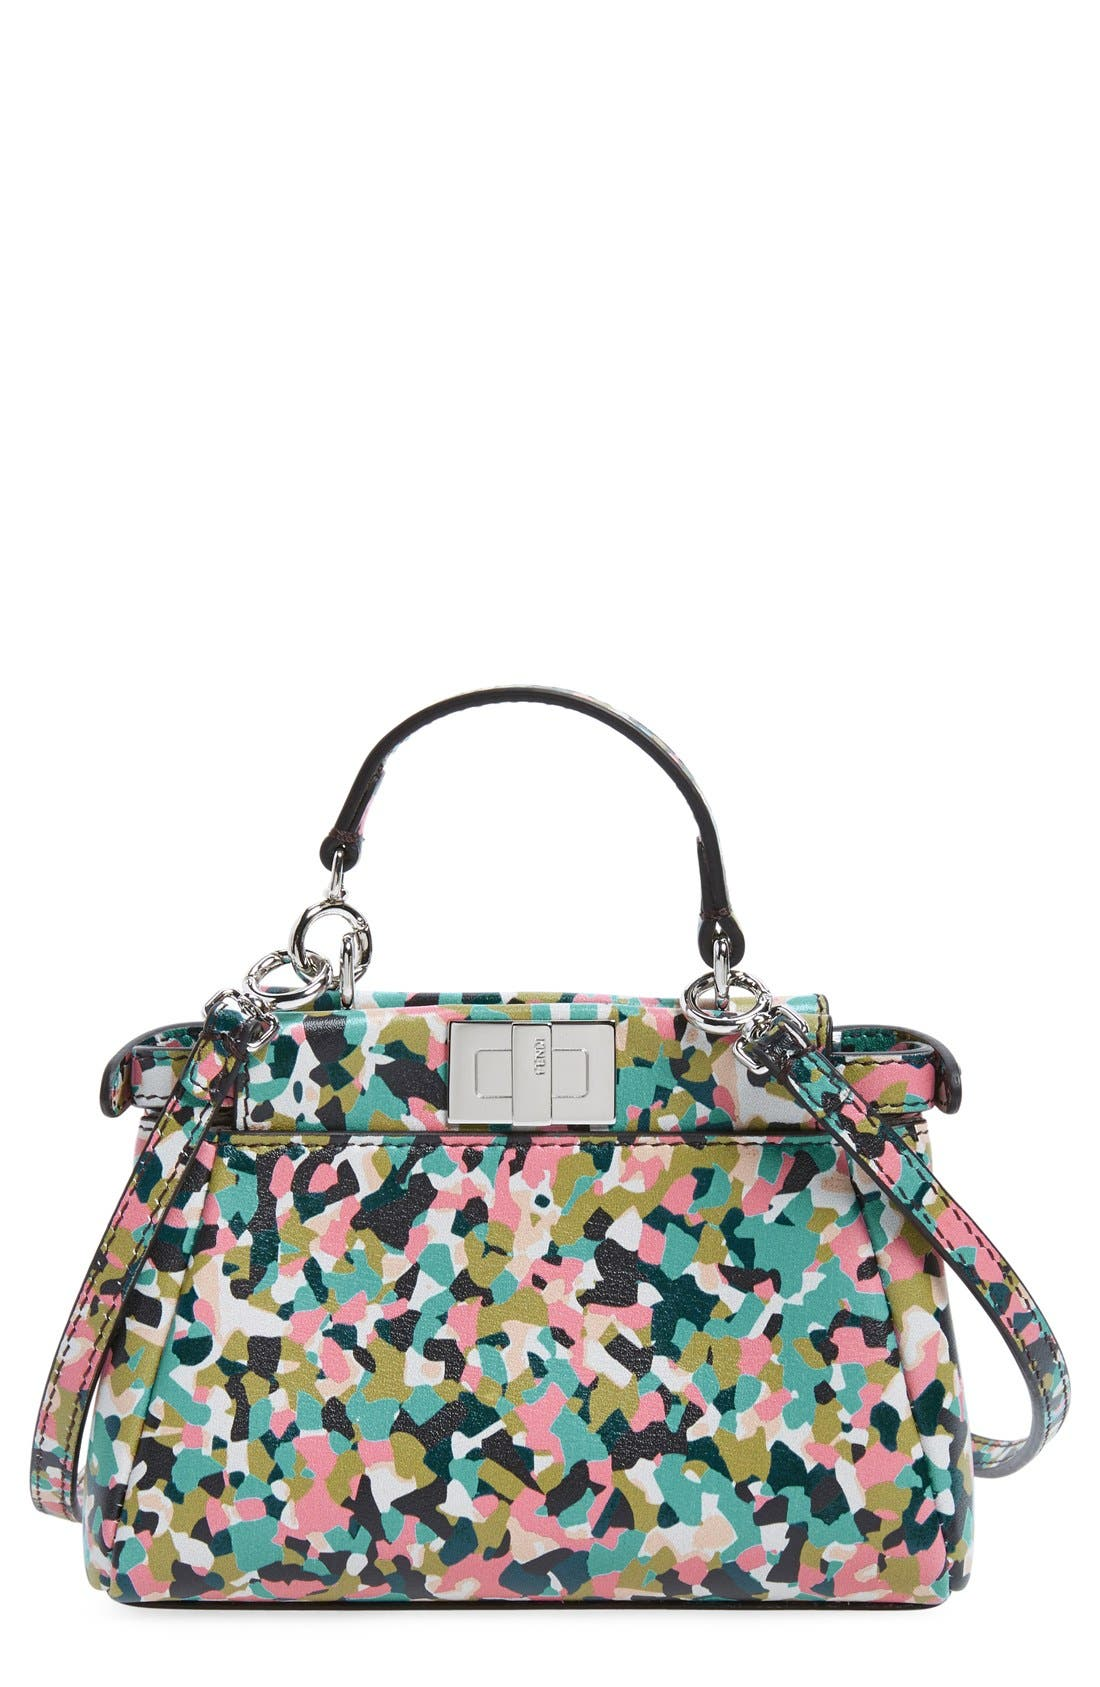 FENDI Micro Peekaboo - Granite Leather Bag